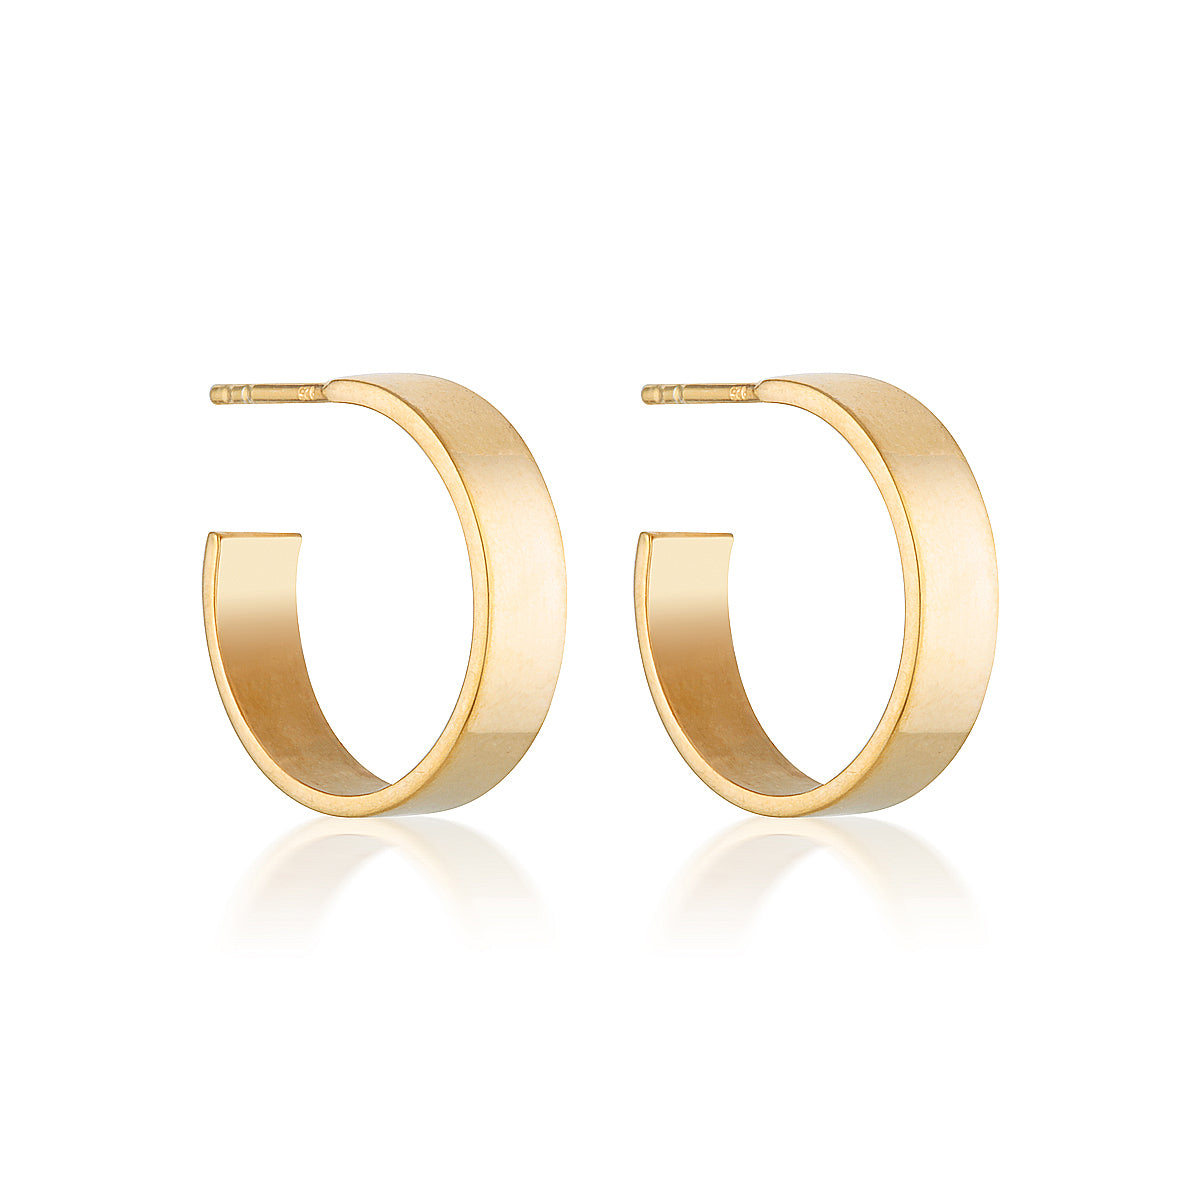 Choosing Gold Rings for Men